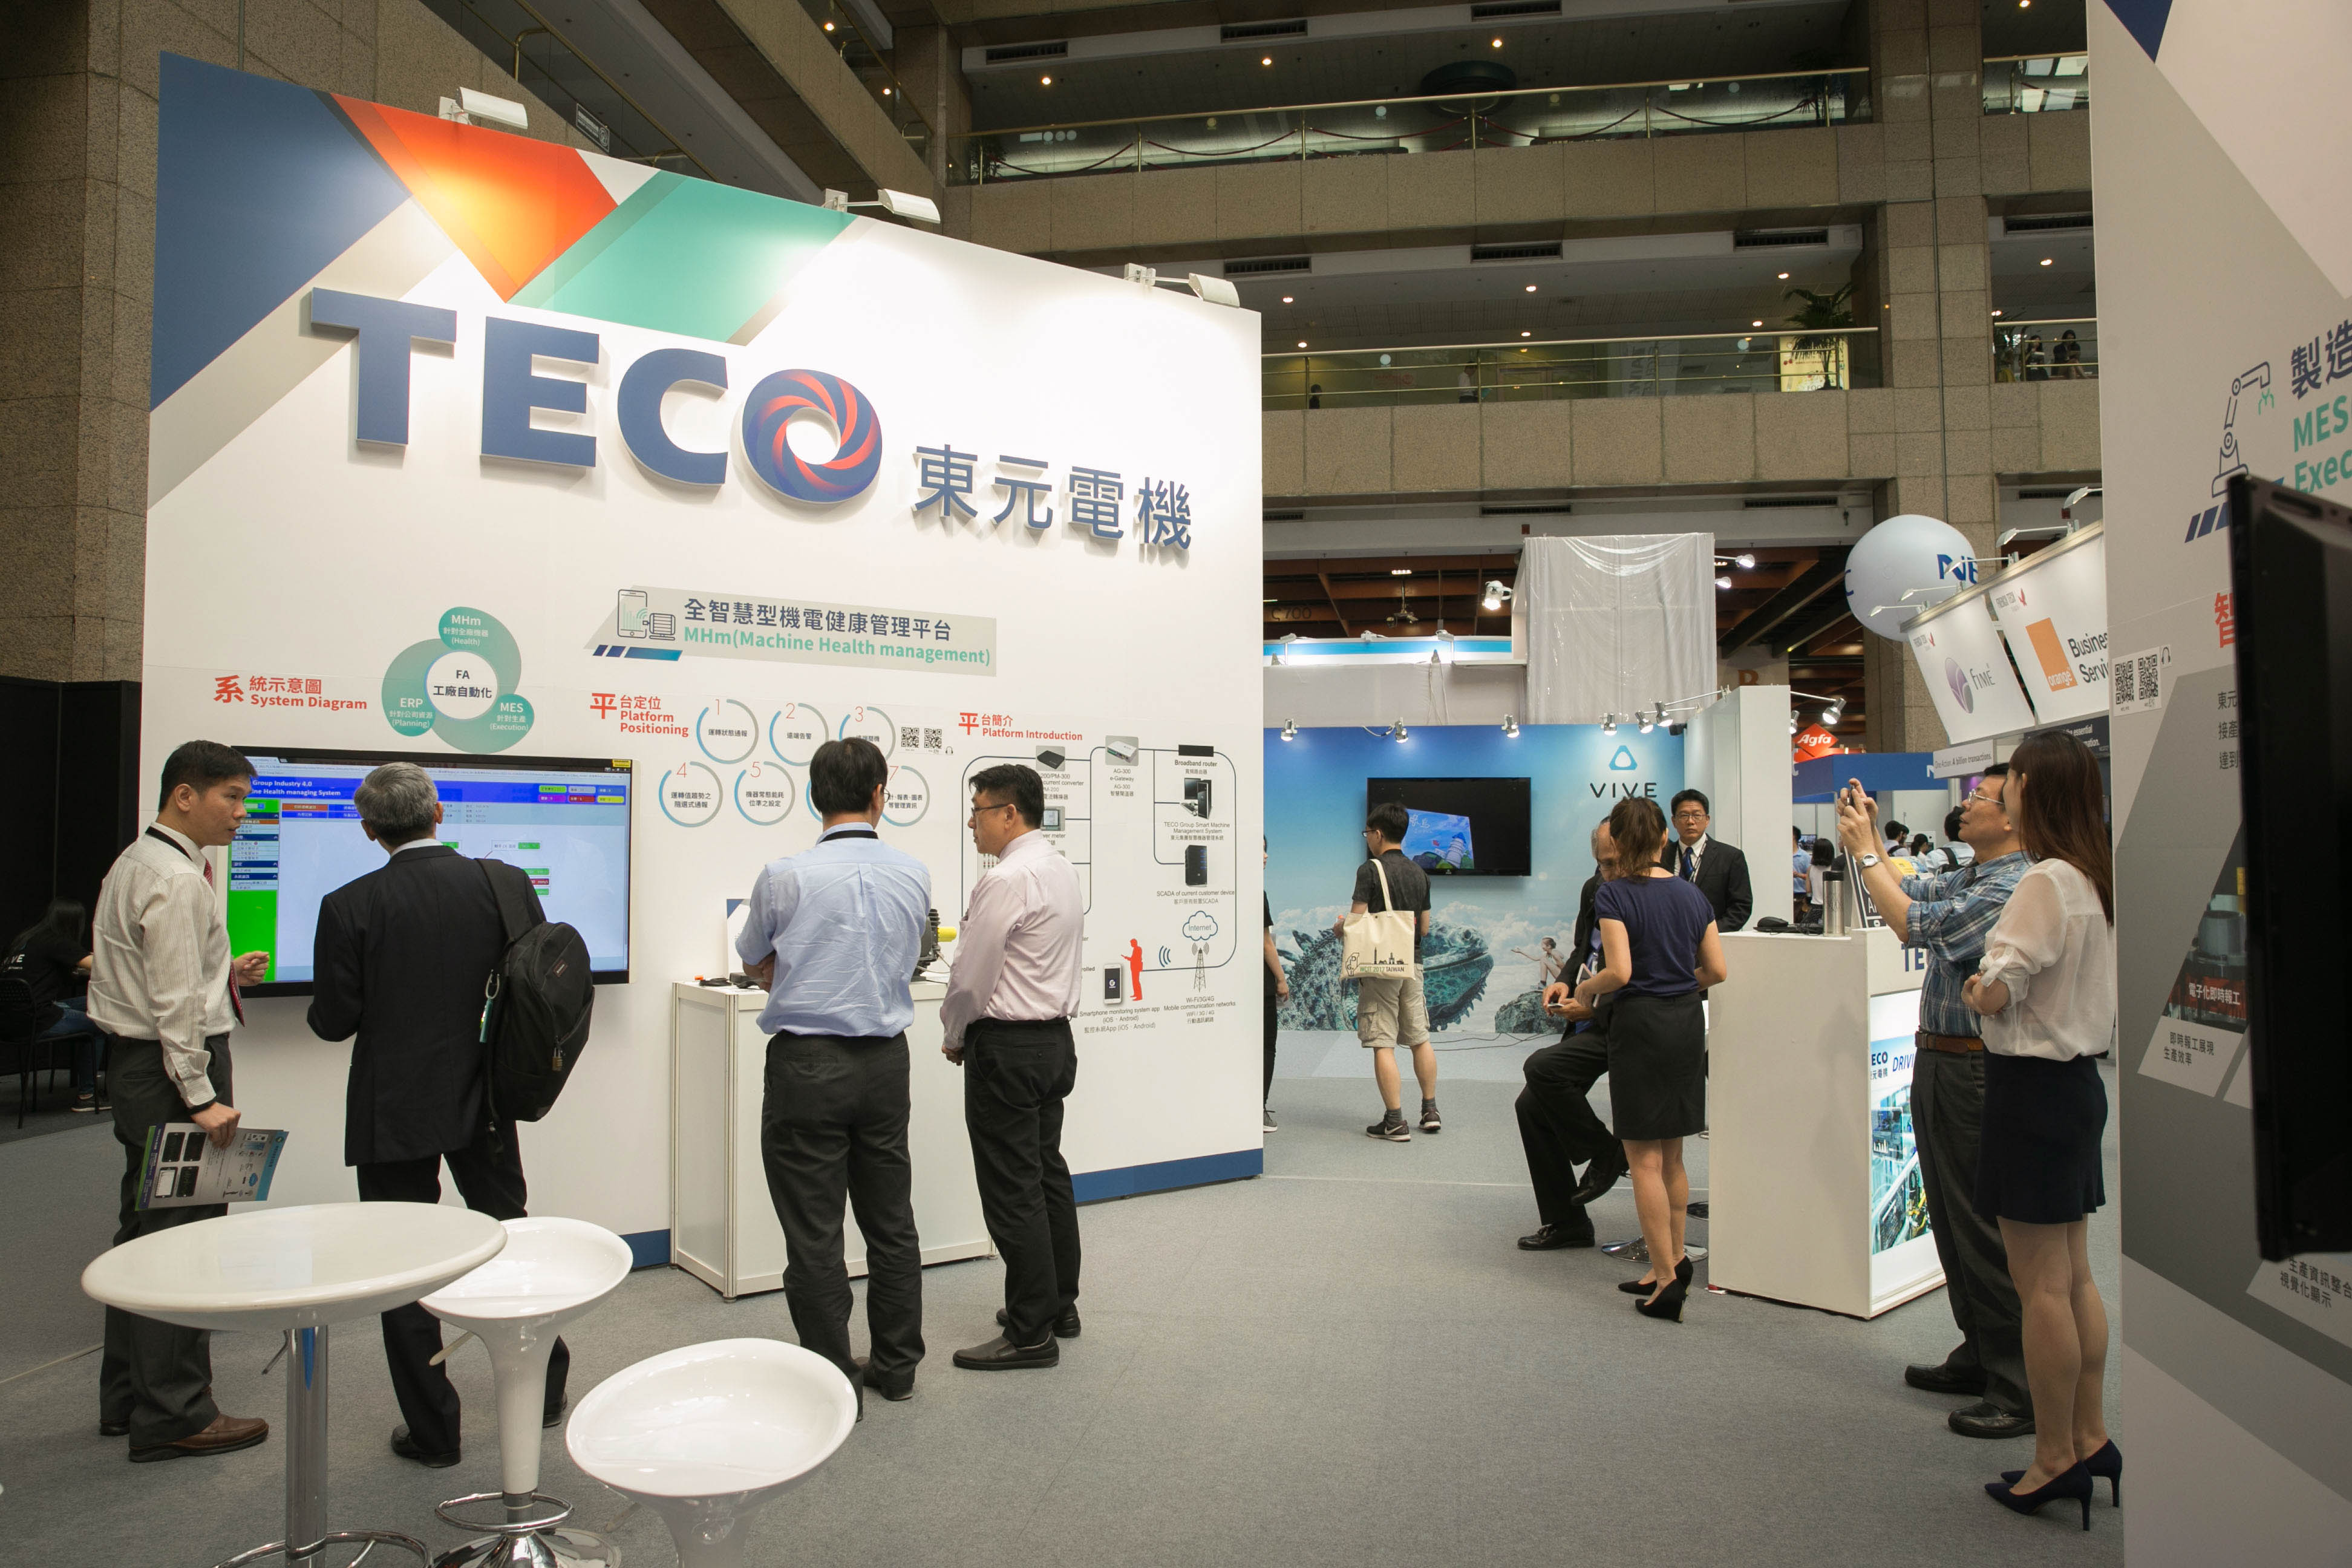 TECO Drives a Smarter Future with Smart Factory Solutions